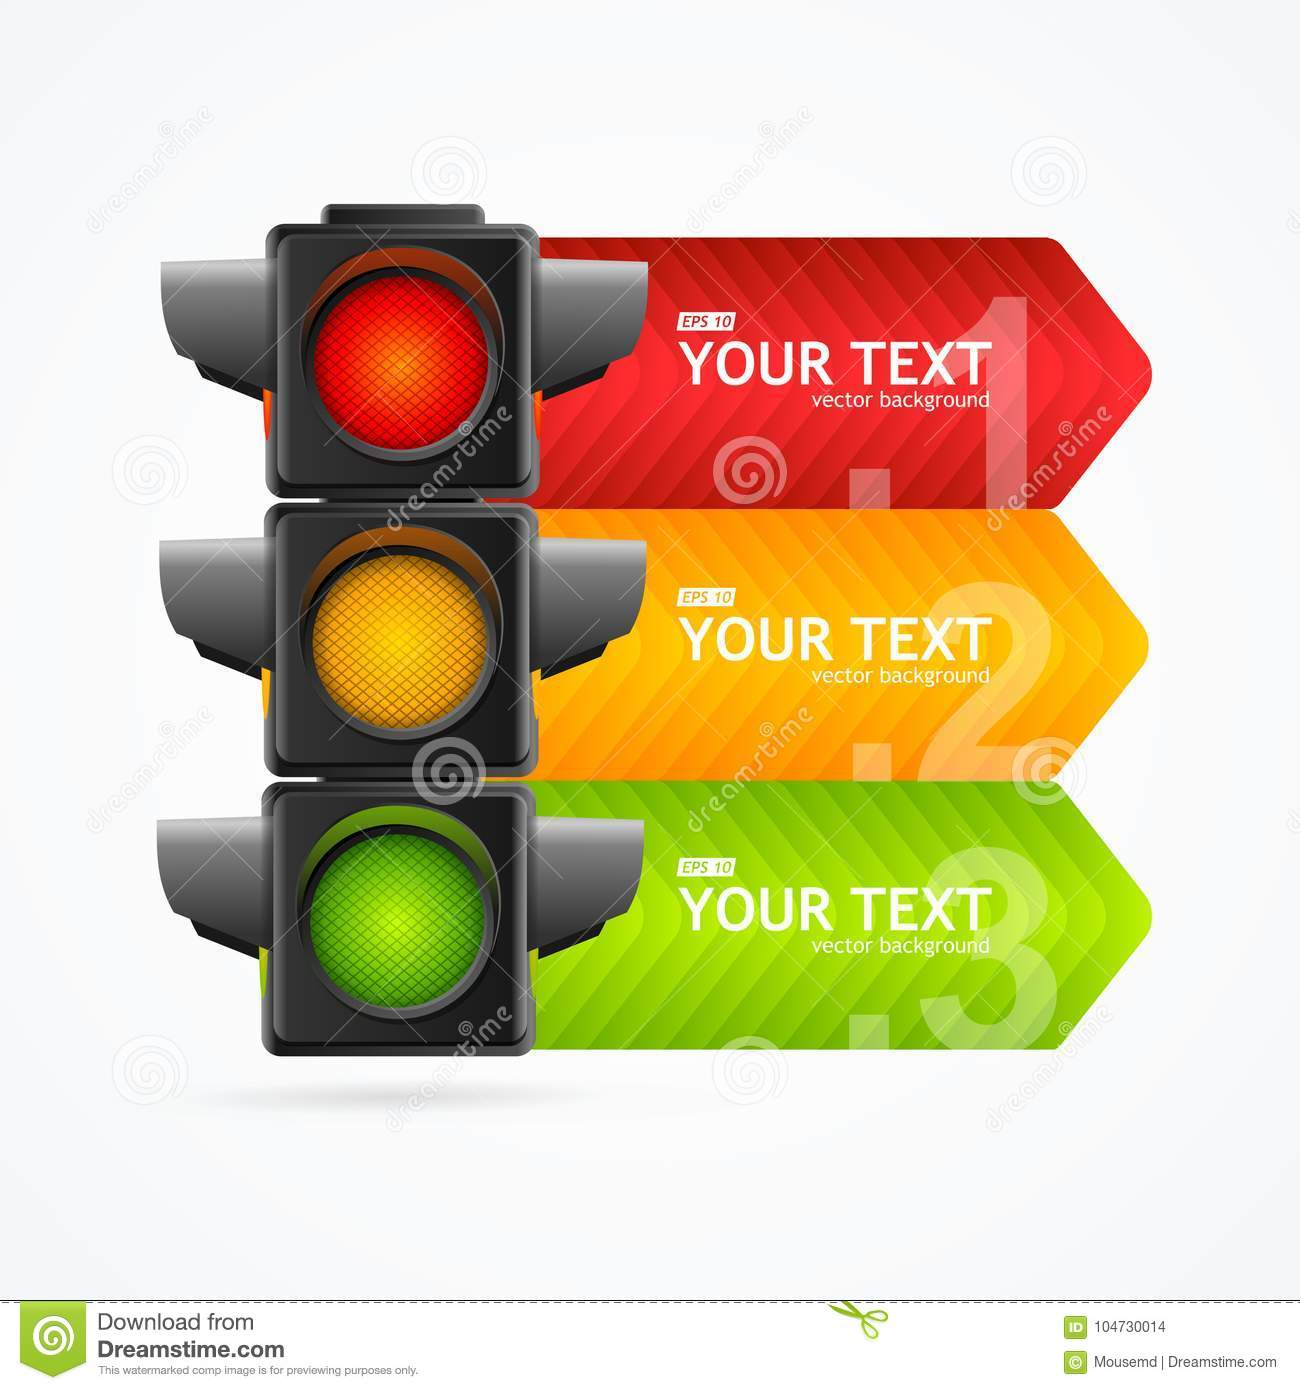 Realistic 3d Detailed Road Traffic Light Banner Card Vector Stock